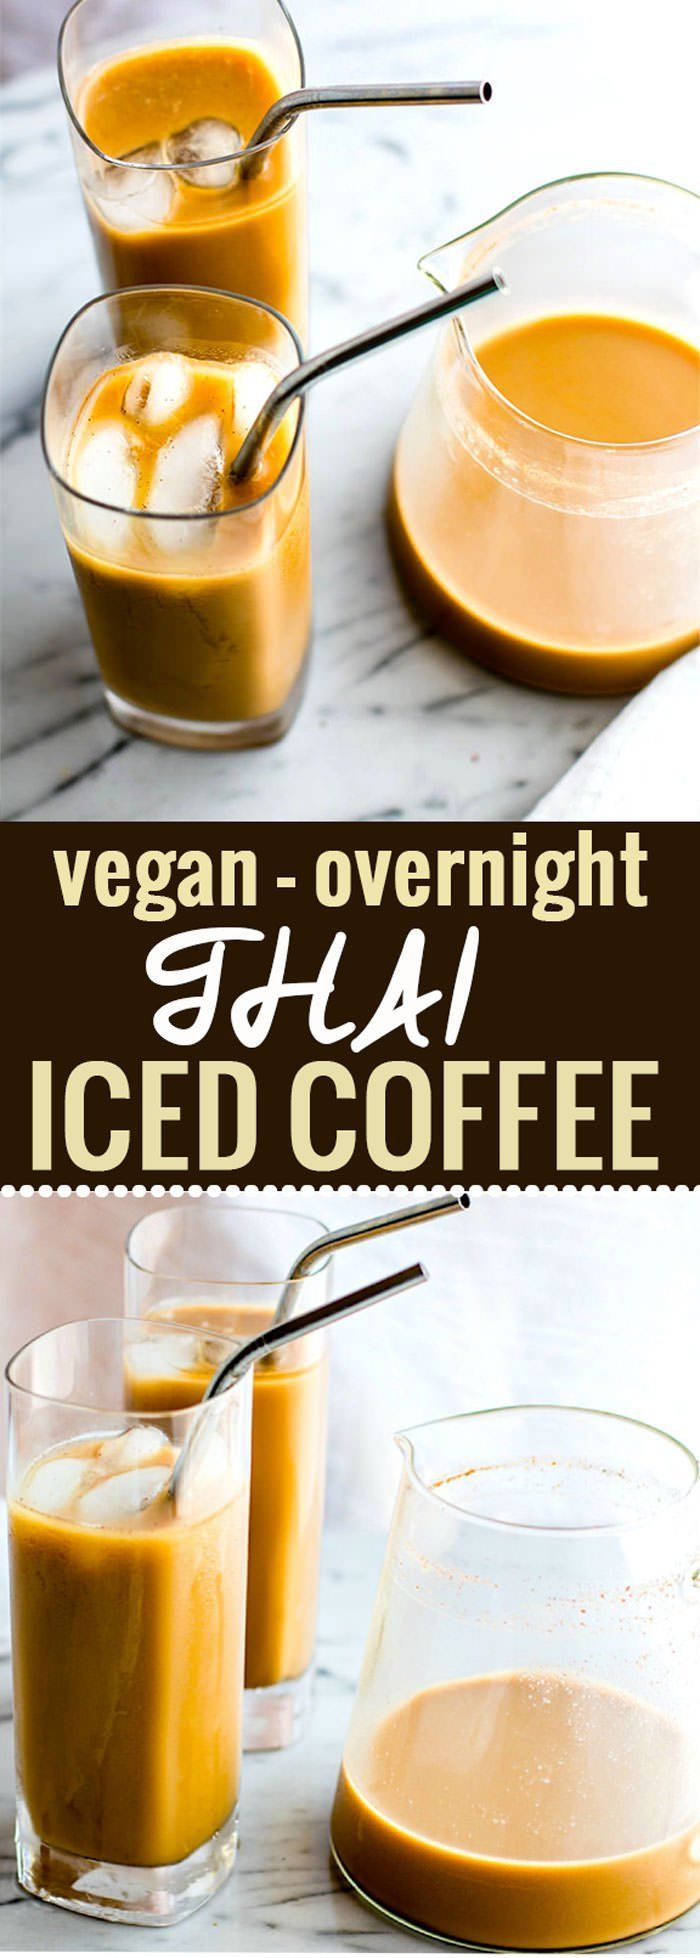 Vegan Overnight Thai Iced Coffee. A super simple THAI iced coffee that's healthy and packed with flavor! This vegan iced coffee version is perfect to make ahead and enjoy the next morning. @lovemysilk #nutchello